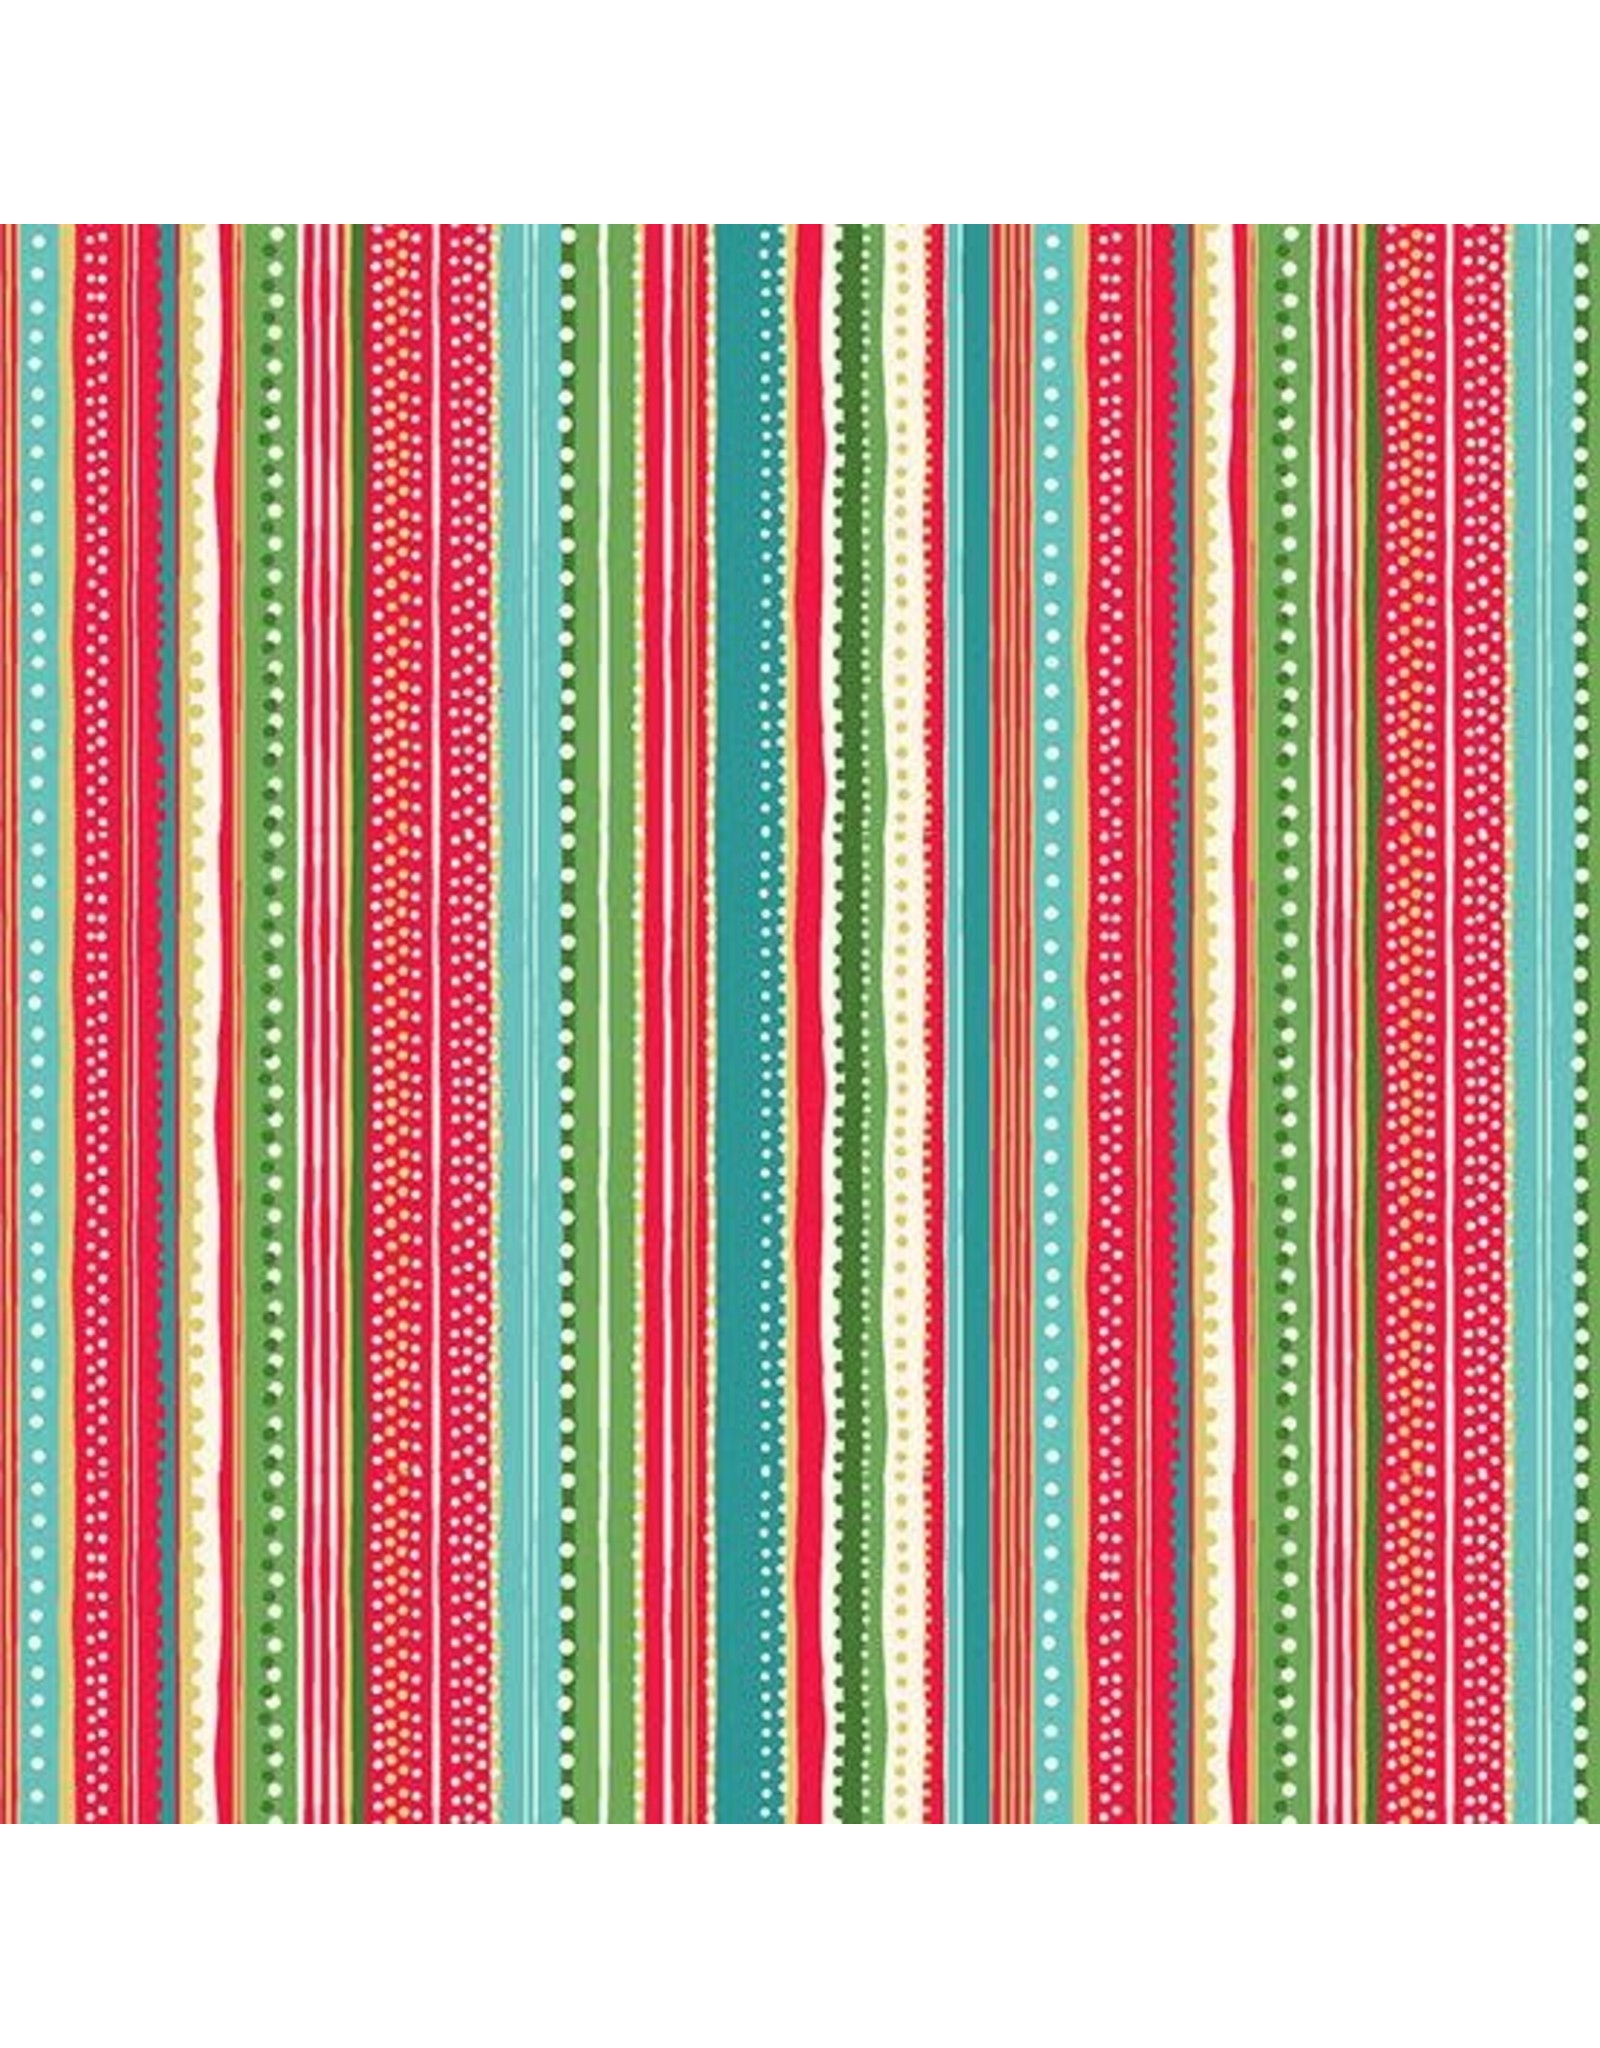 Andover Fabrics Let it Snow, Dottie Stripe in Multi, Fabric Half-Yards TP-1496-R